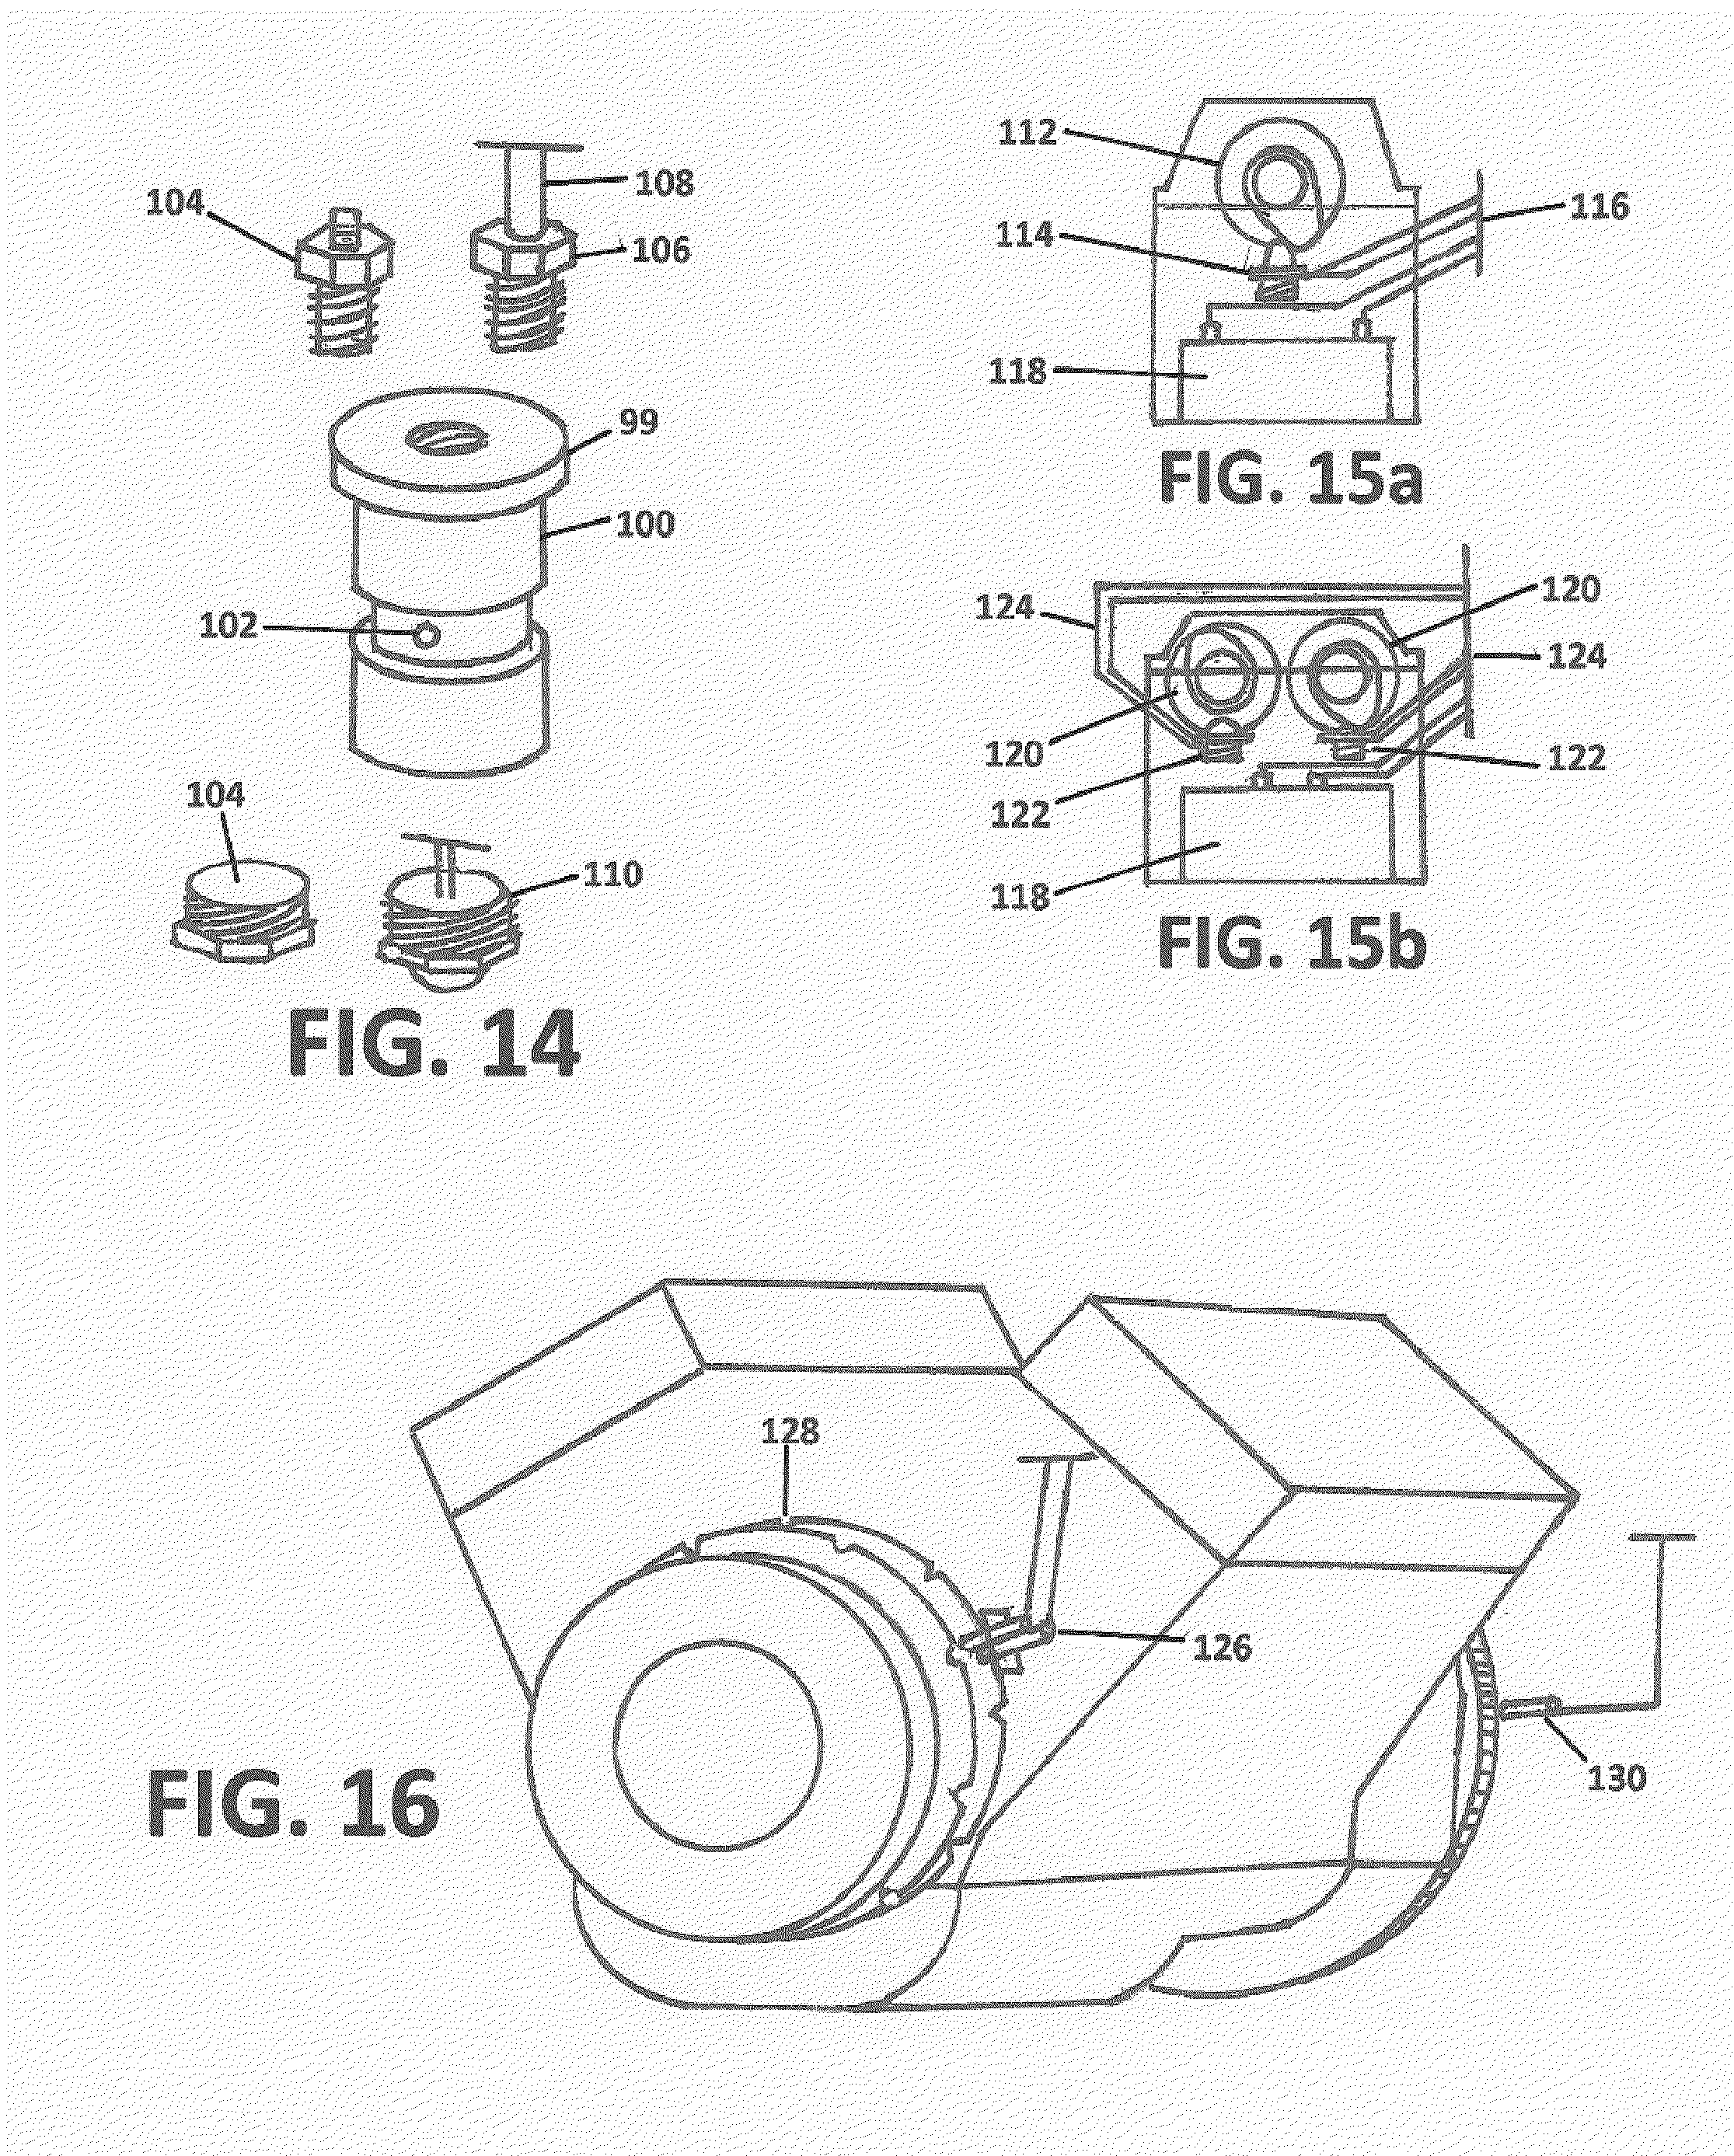 Electric Turbocharger Patents: Magnetically Propelled Engine With